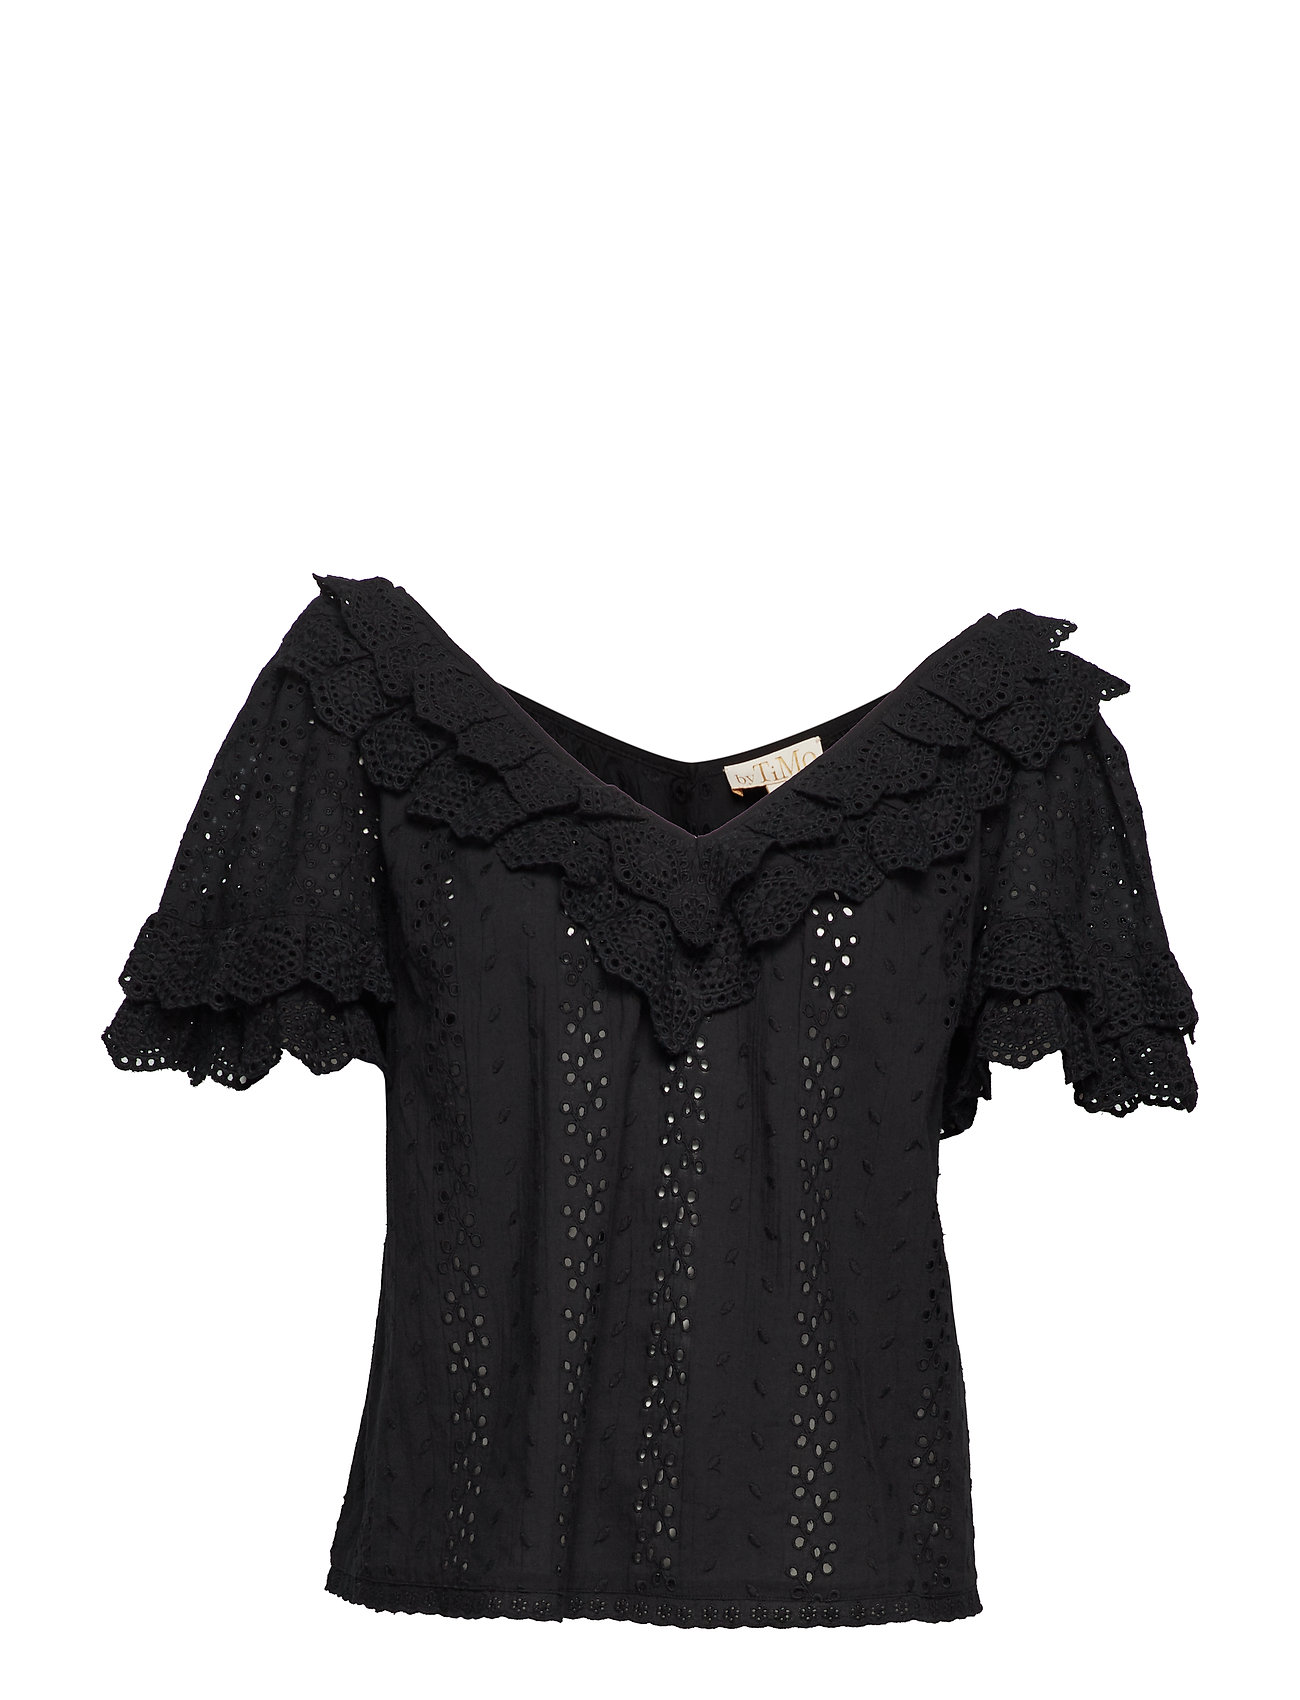 by Ti Mo Broderie Anglaise Top - BLACK